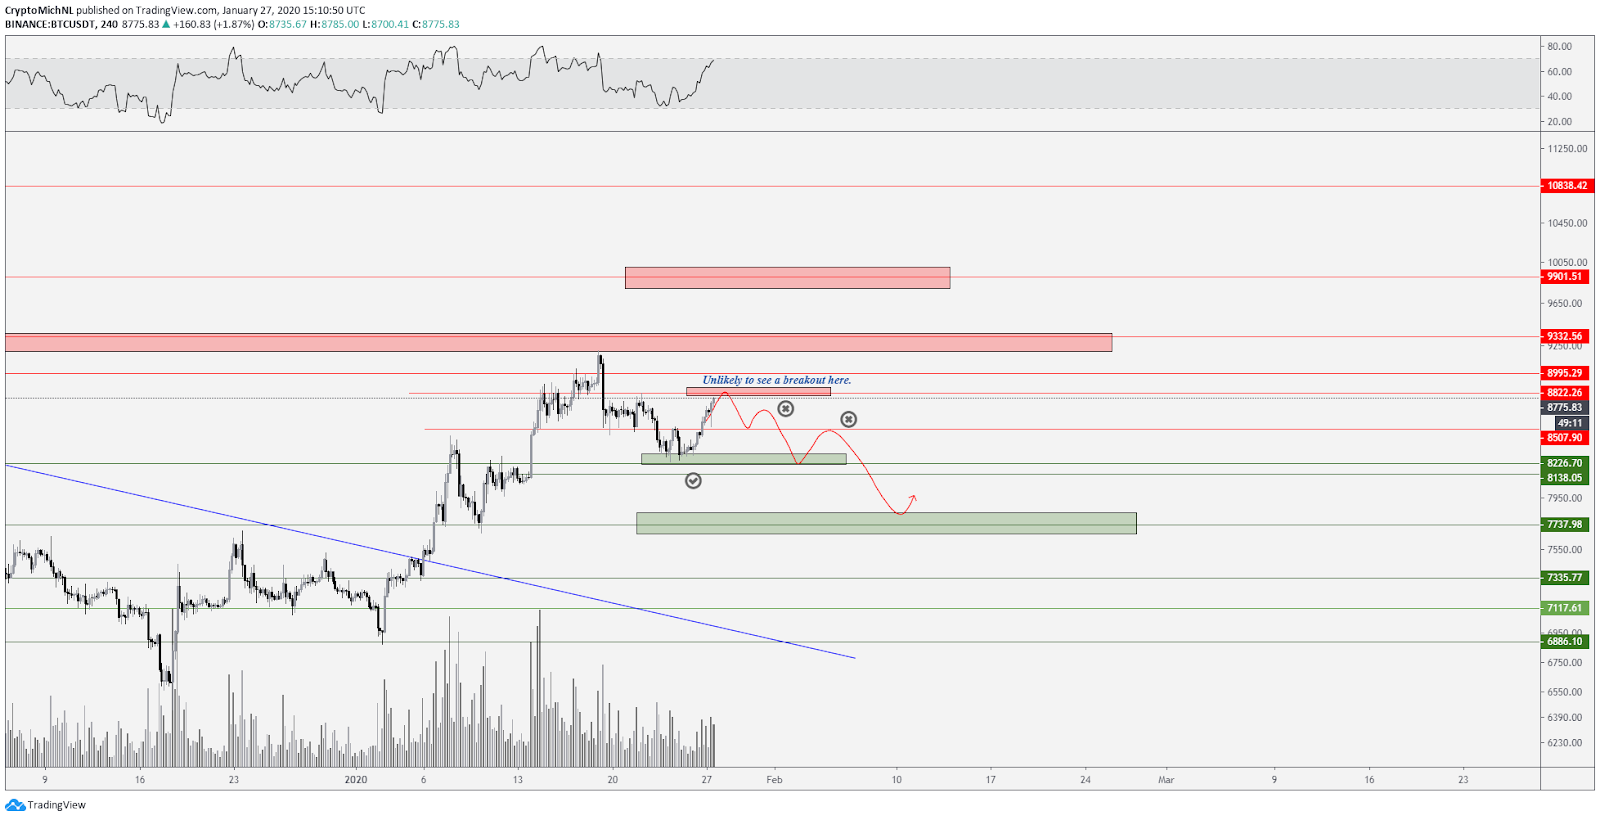 BTC USDT 4-hour chart bearish scenario. Source: TradingView